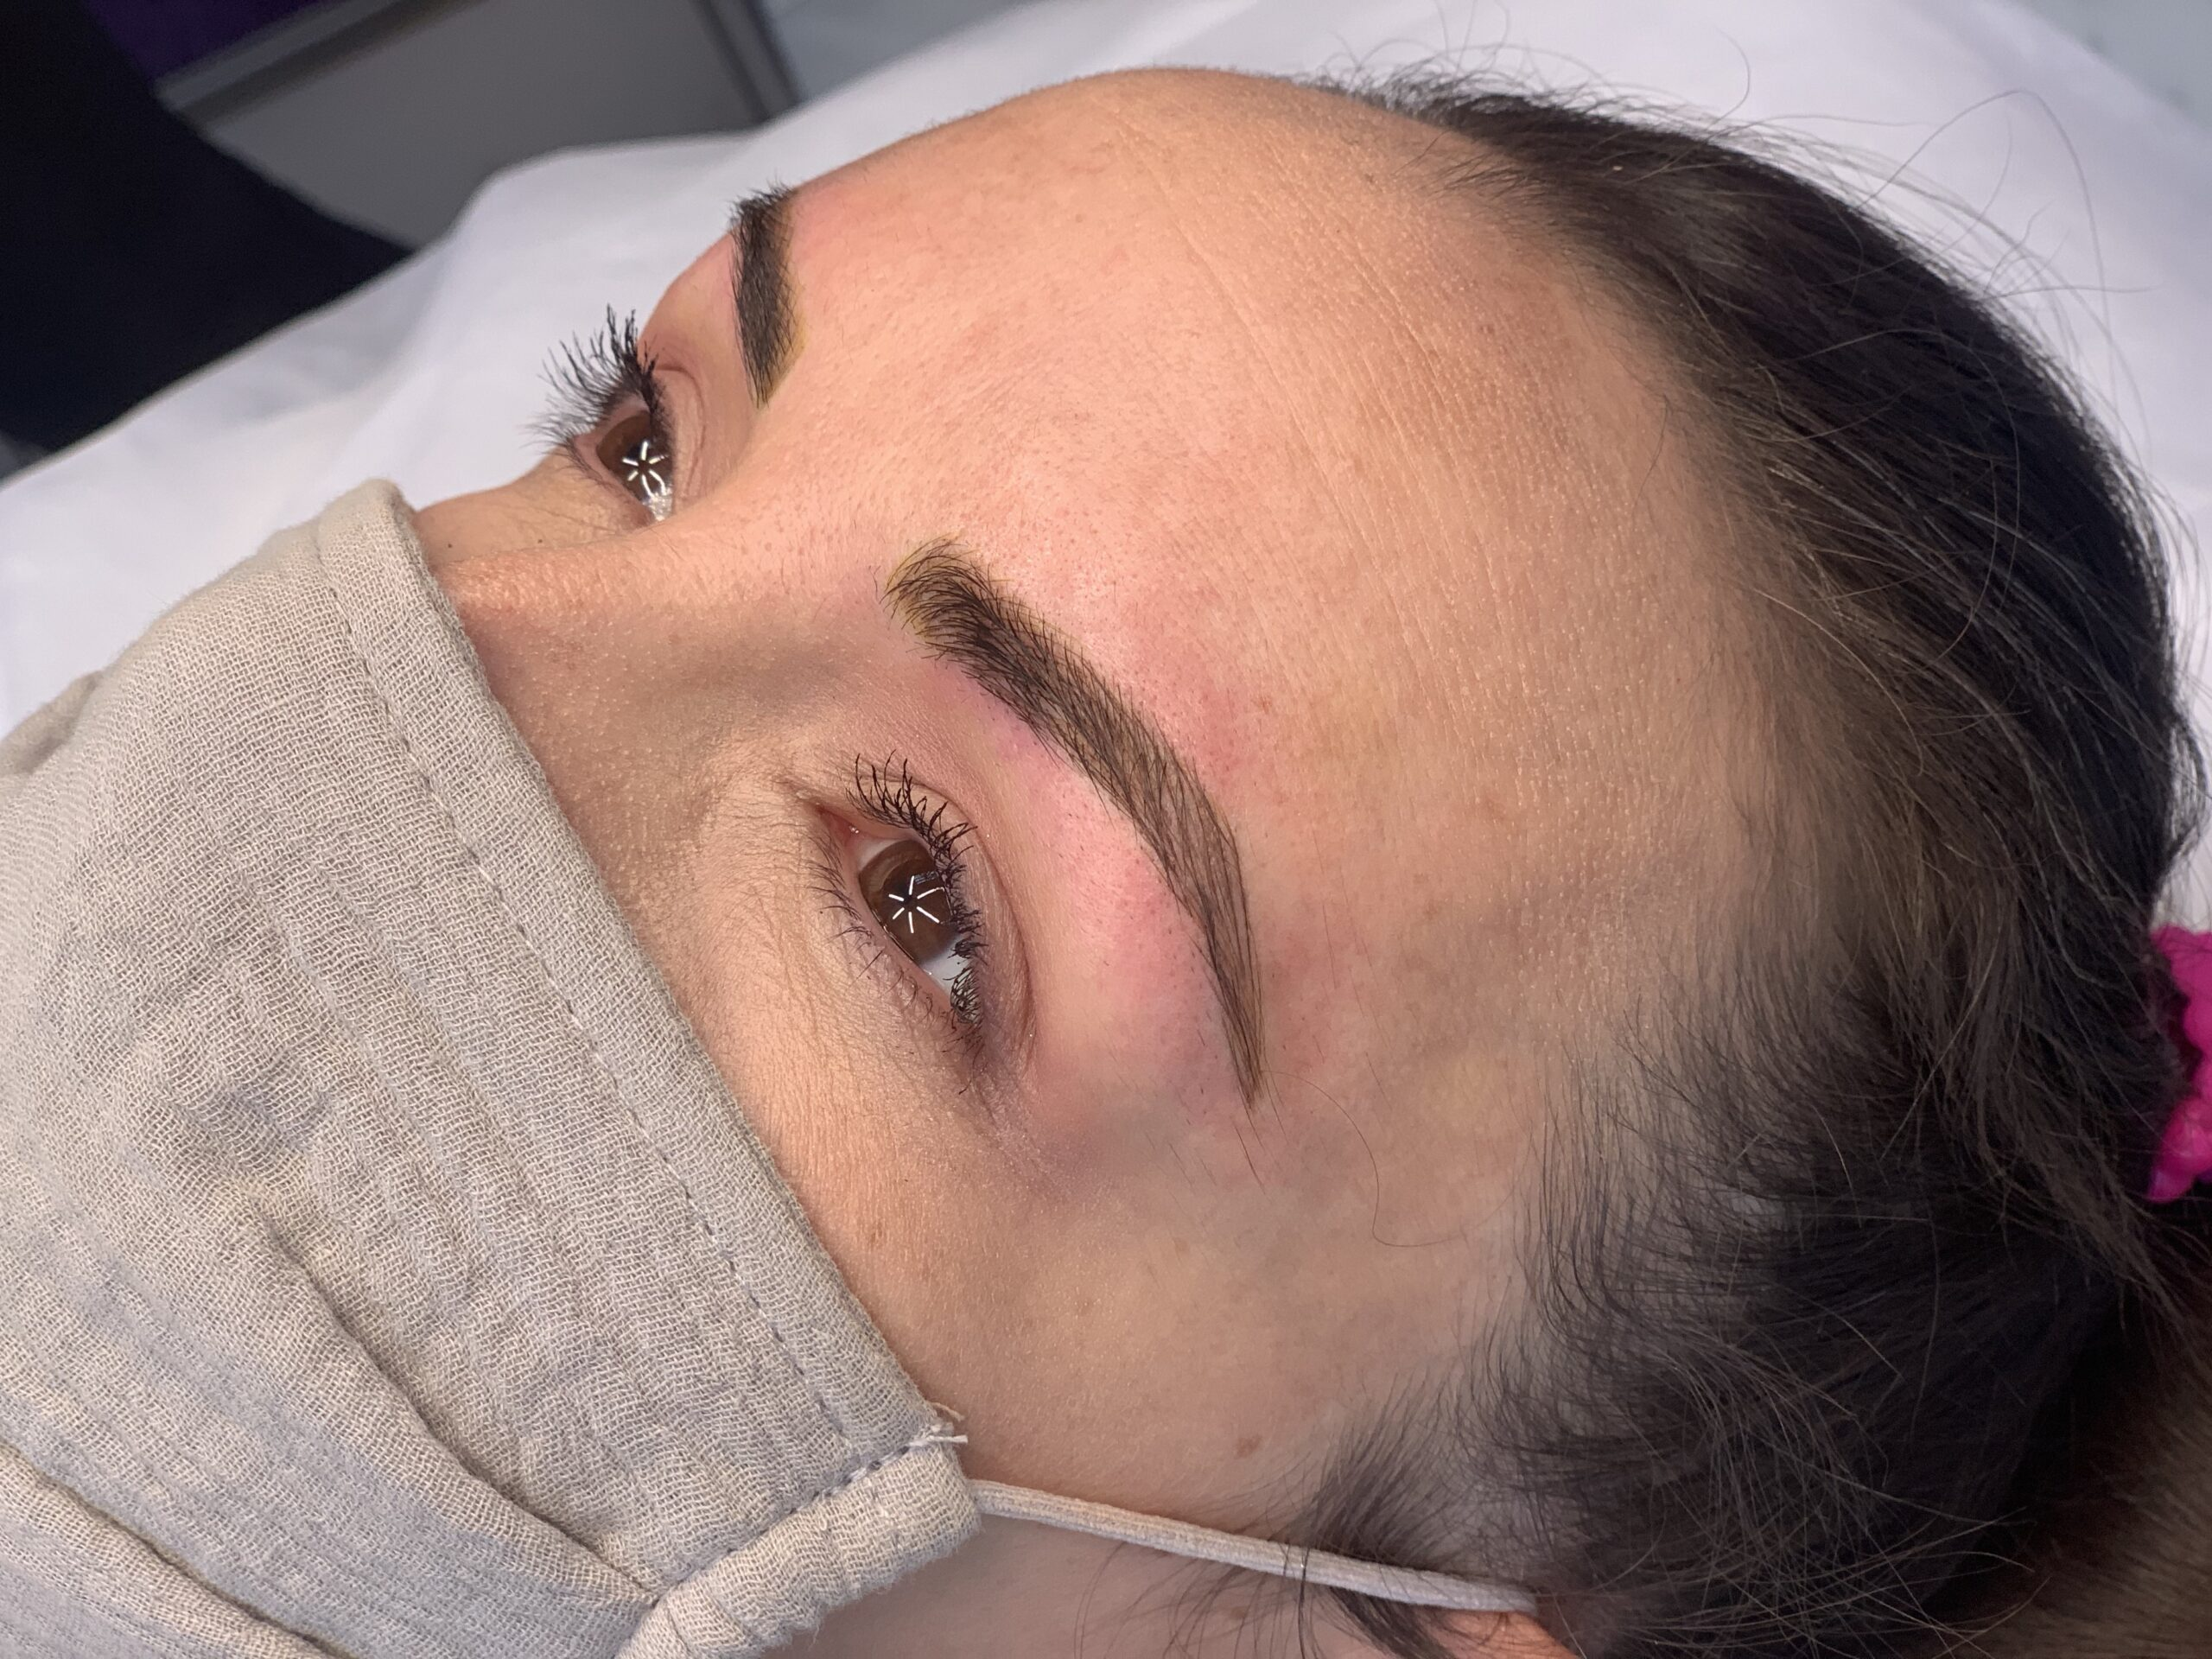 Beyond The Trend: Why Microblading Is Ushering a New Beauty Renaissance That's Here To Stay